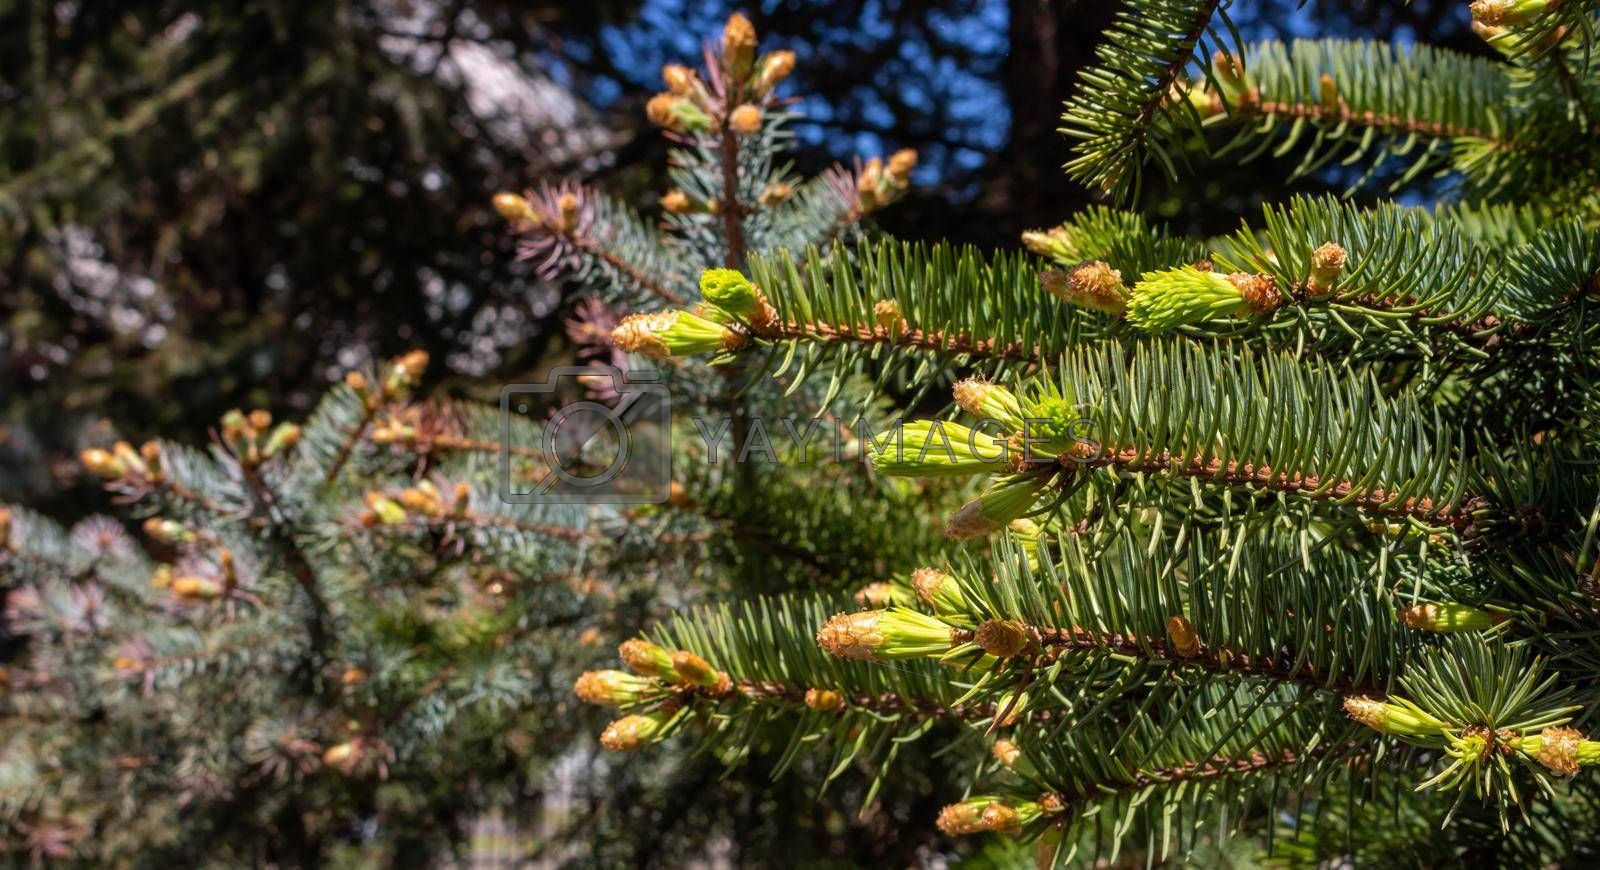 Young green shoots of spruce needles . Fresh-growing spruce shoots on a branch in the spring forest. Sprouts on a twig in the sunlight coniferous background.